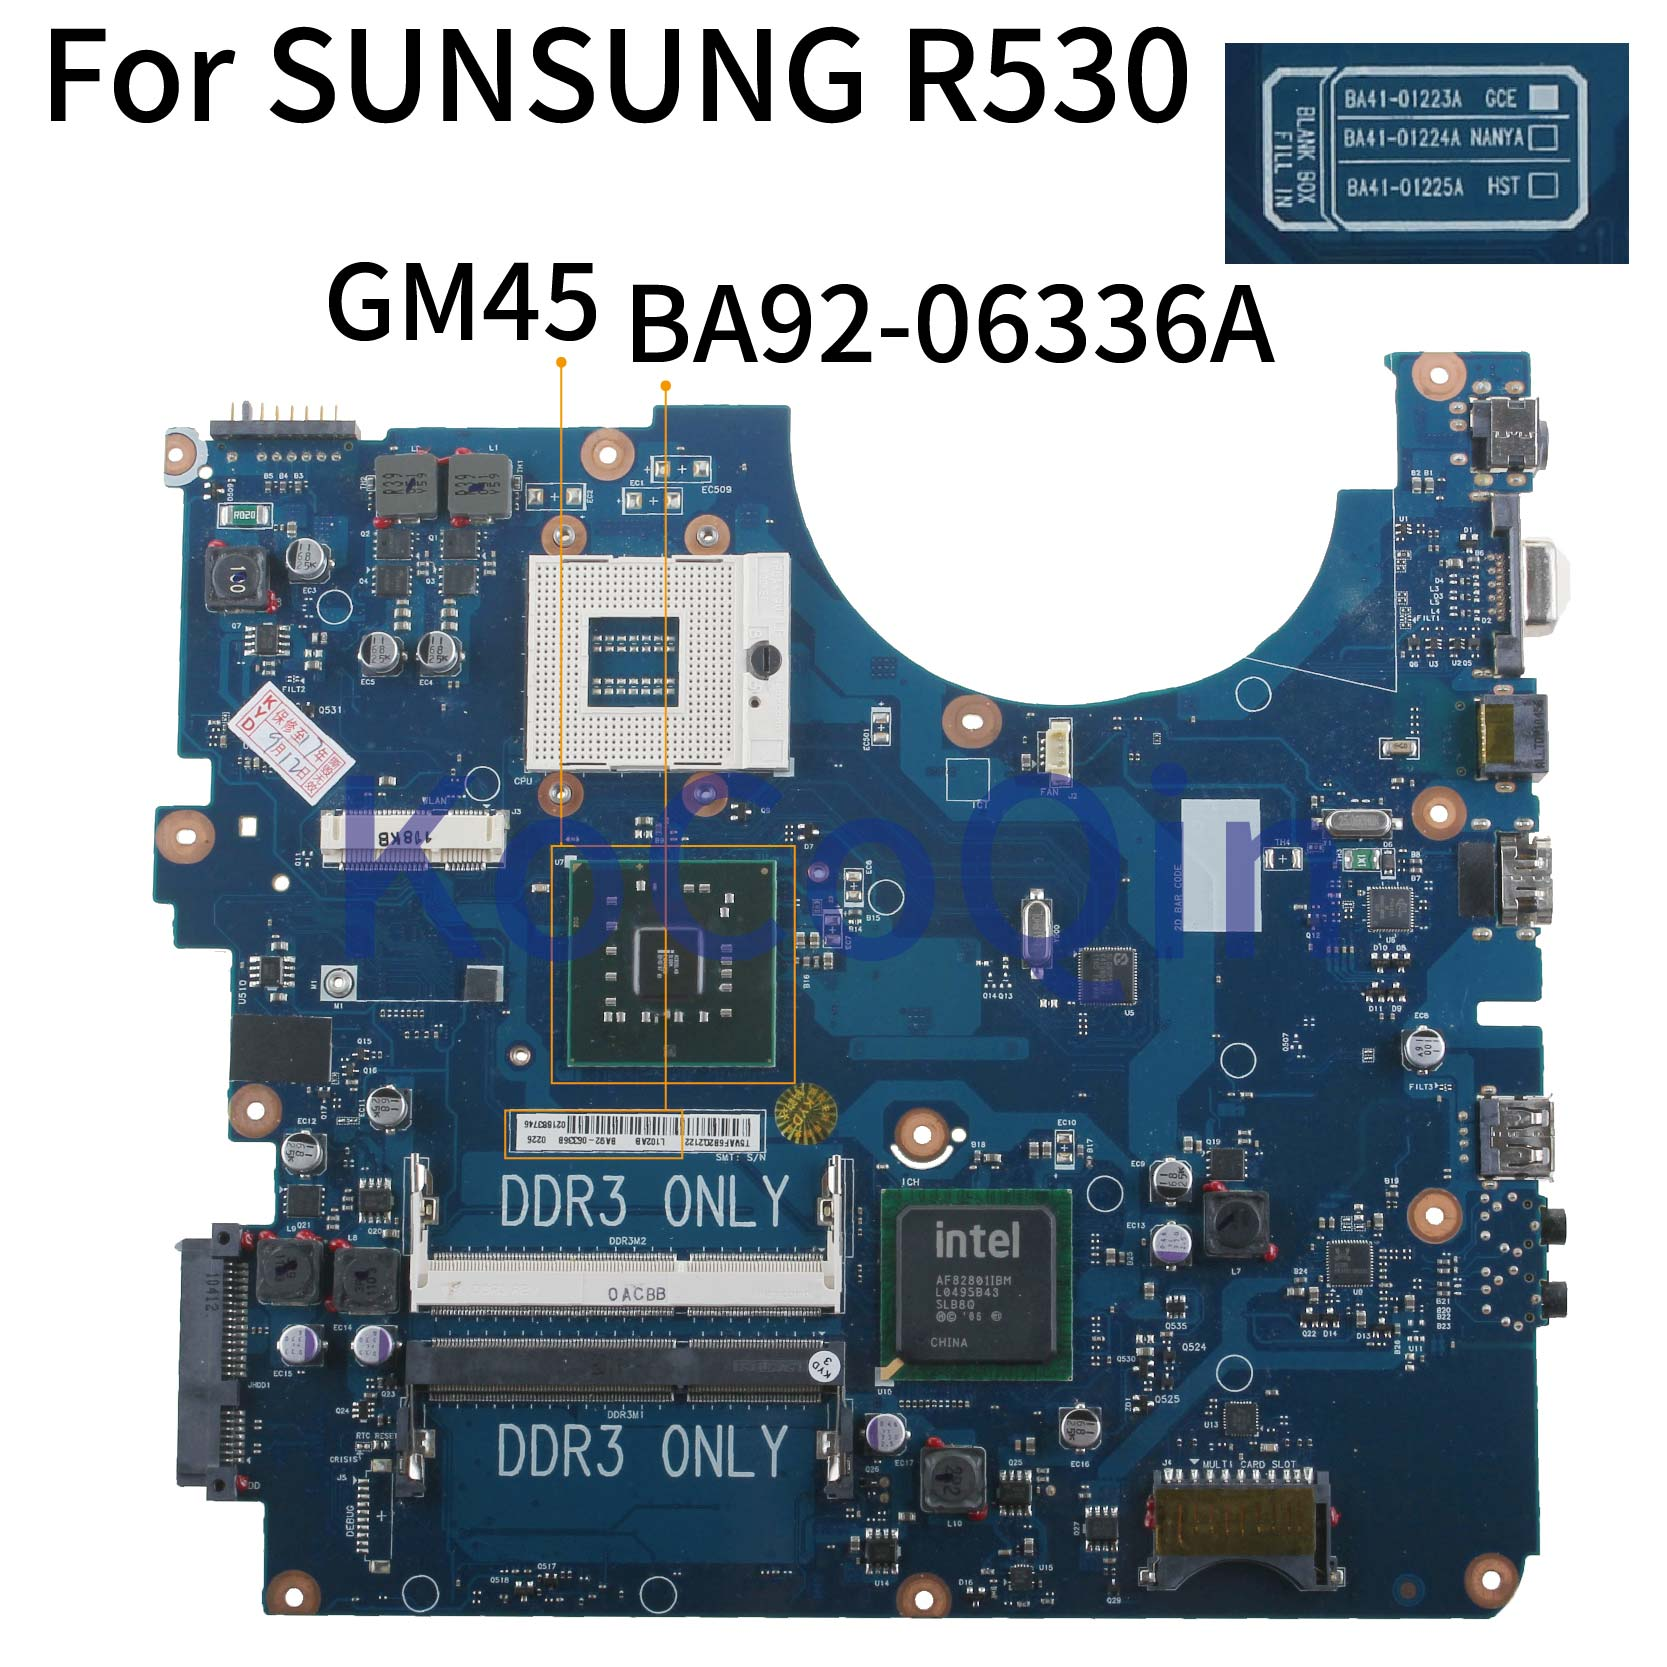 KoCoQin Laptop Motherboard For SUNSUNG NP-R530 R530 Mainboard BA41-01223A BA92-06336A GM45